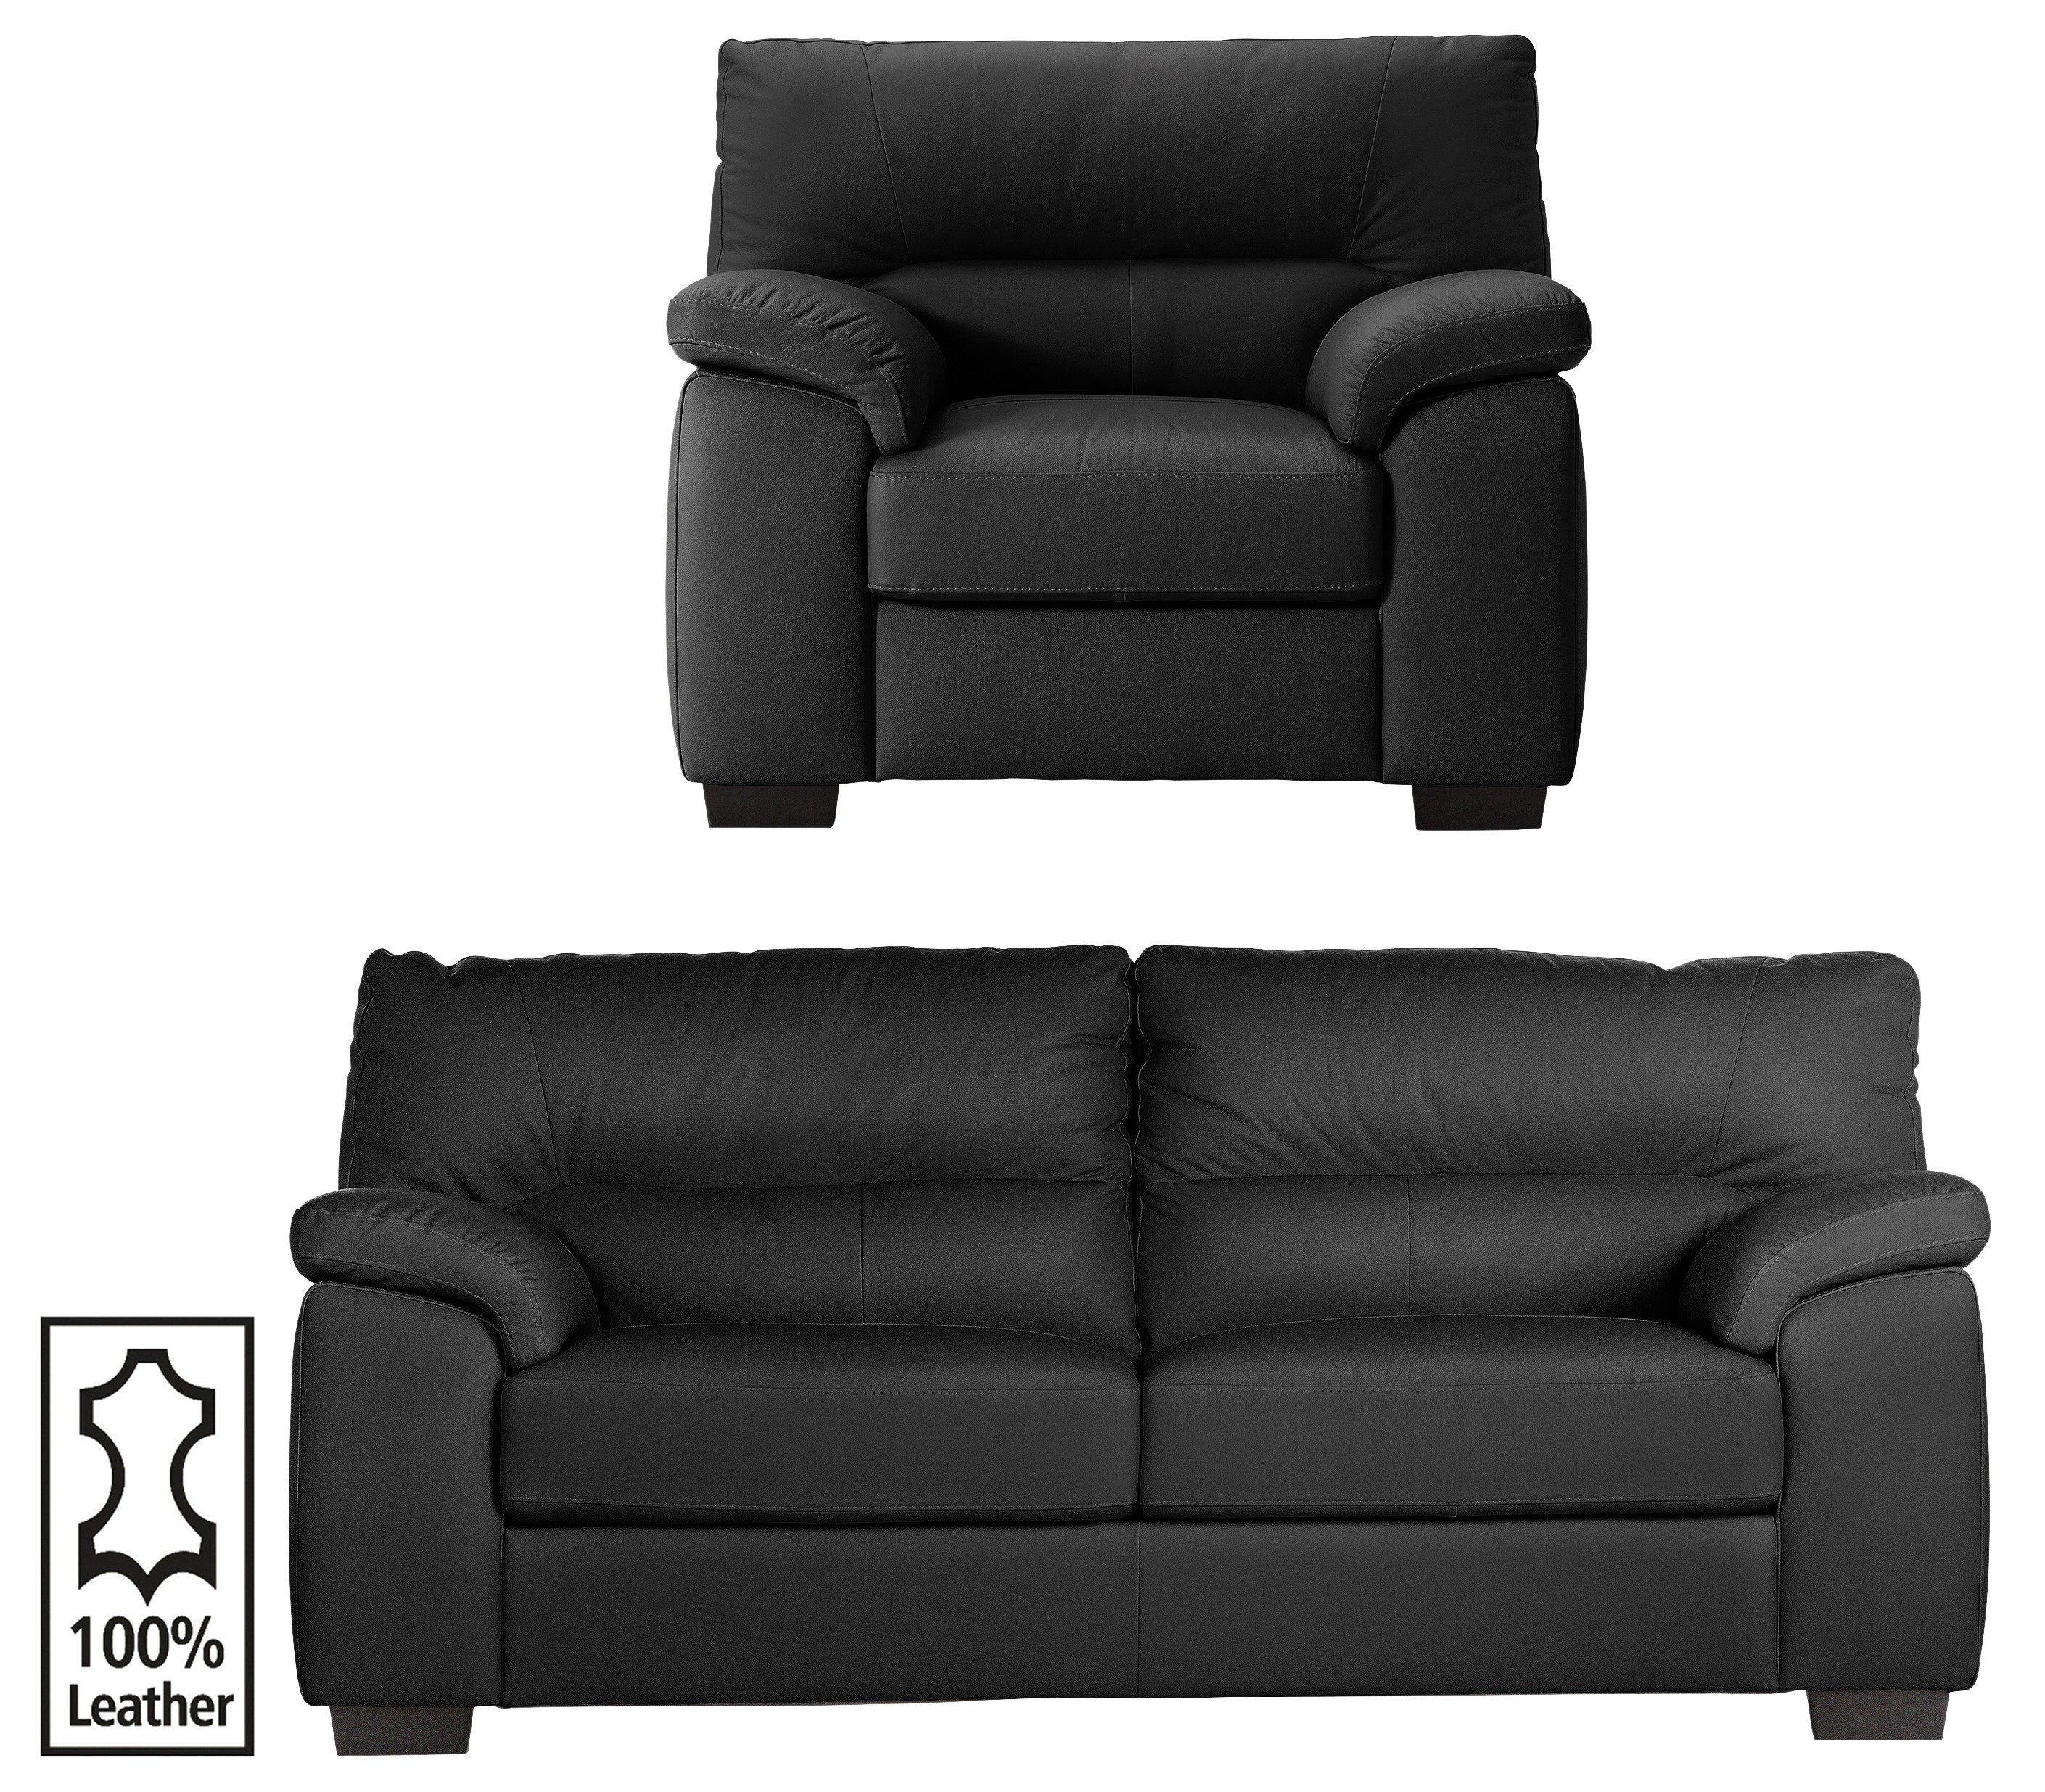 sofa package deals uk serta click clack packages page 1 argos price tracker